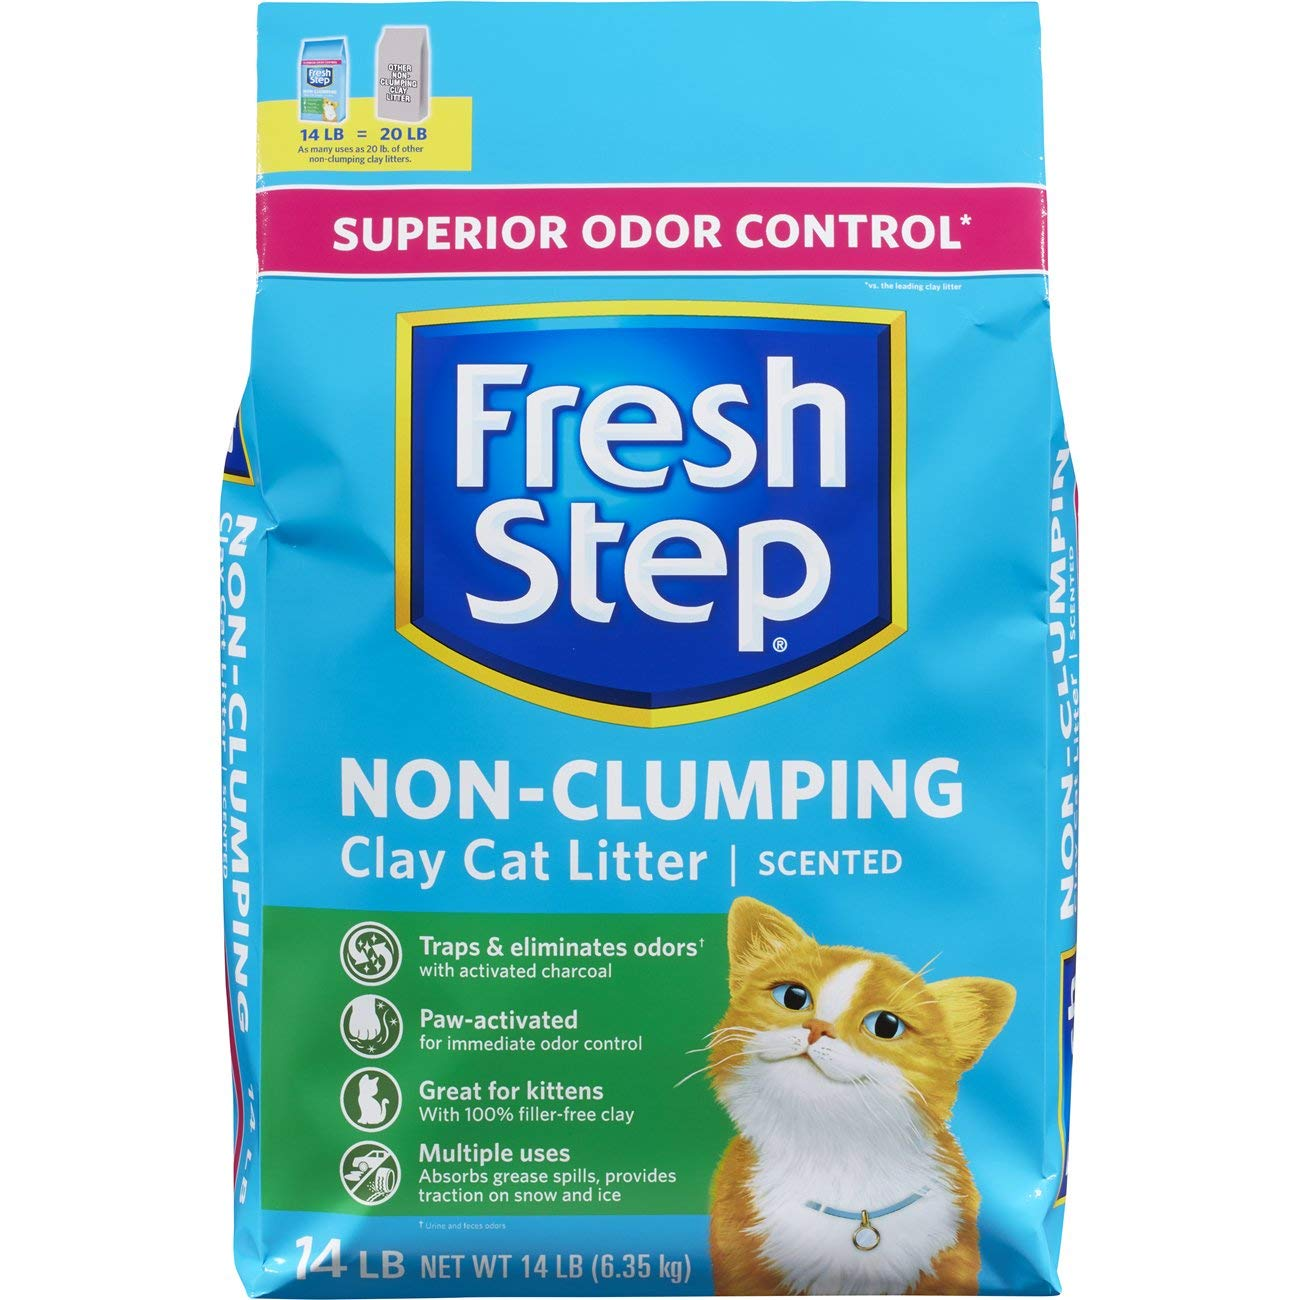 Fresh Step Scented Non-Clumping Clay Cat Litter, 14 Pounds (Pack of 3) by Fresh Step